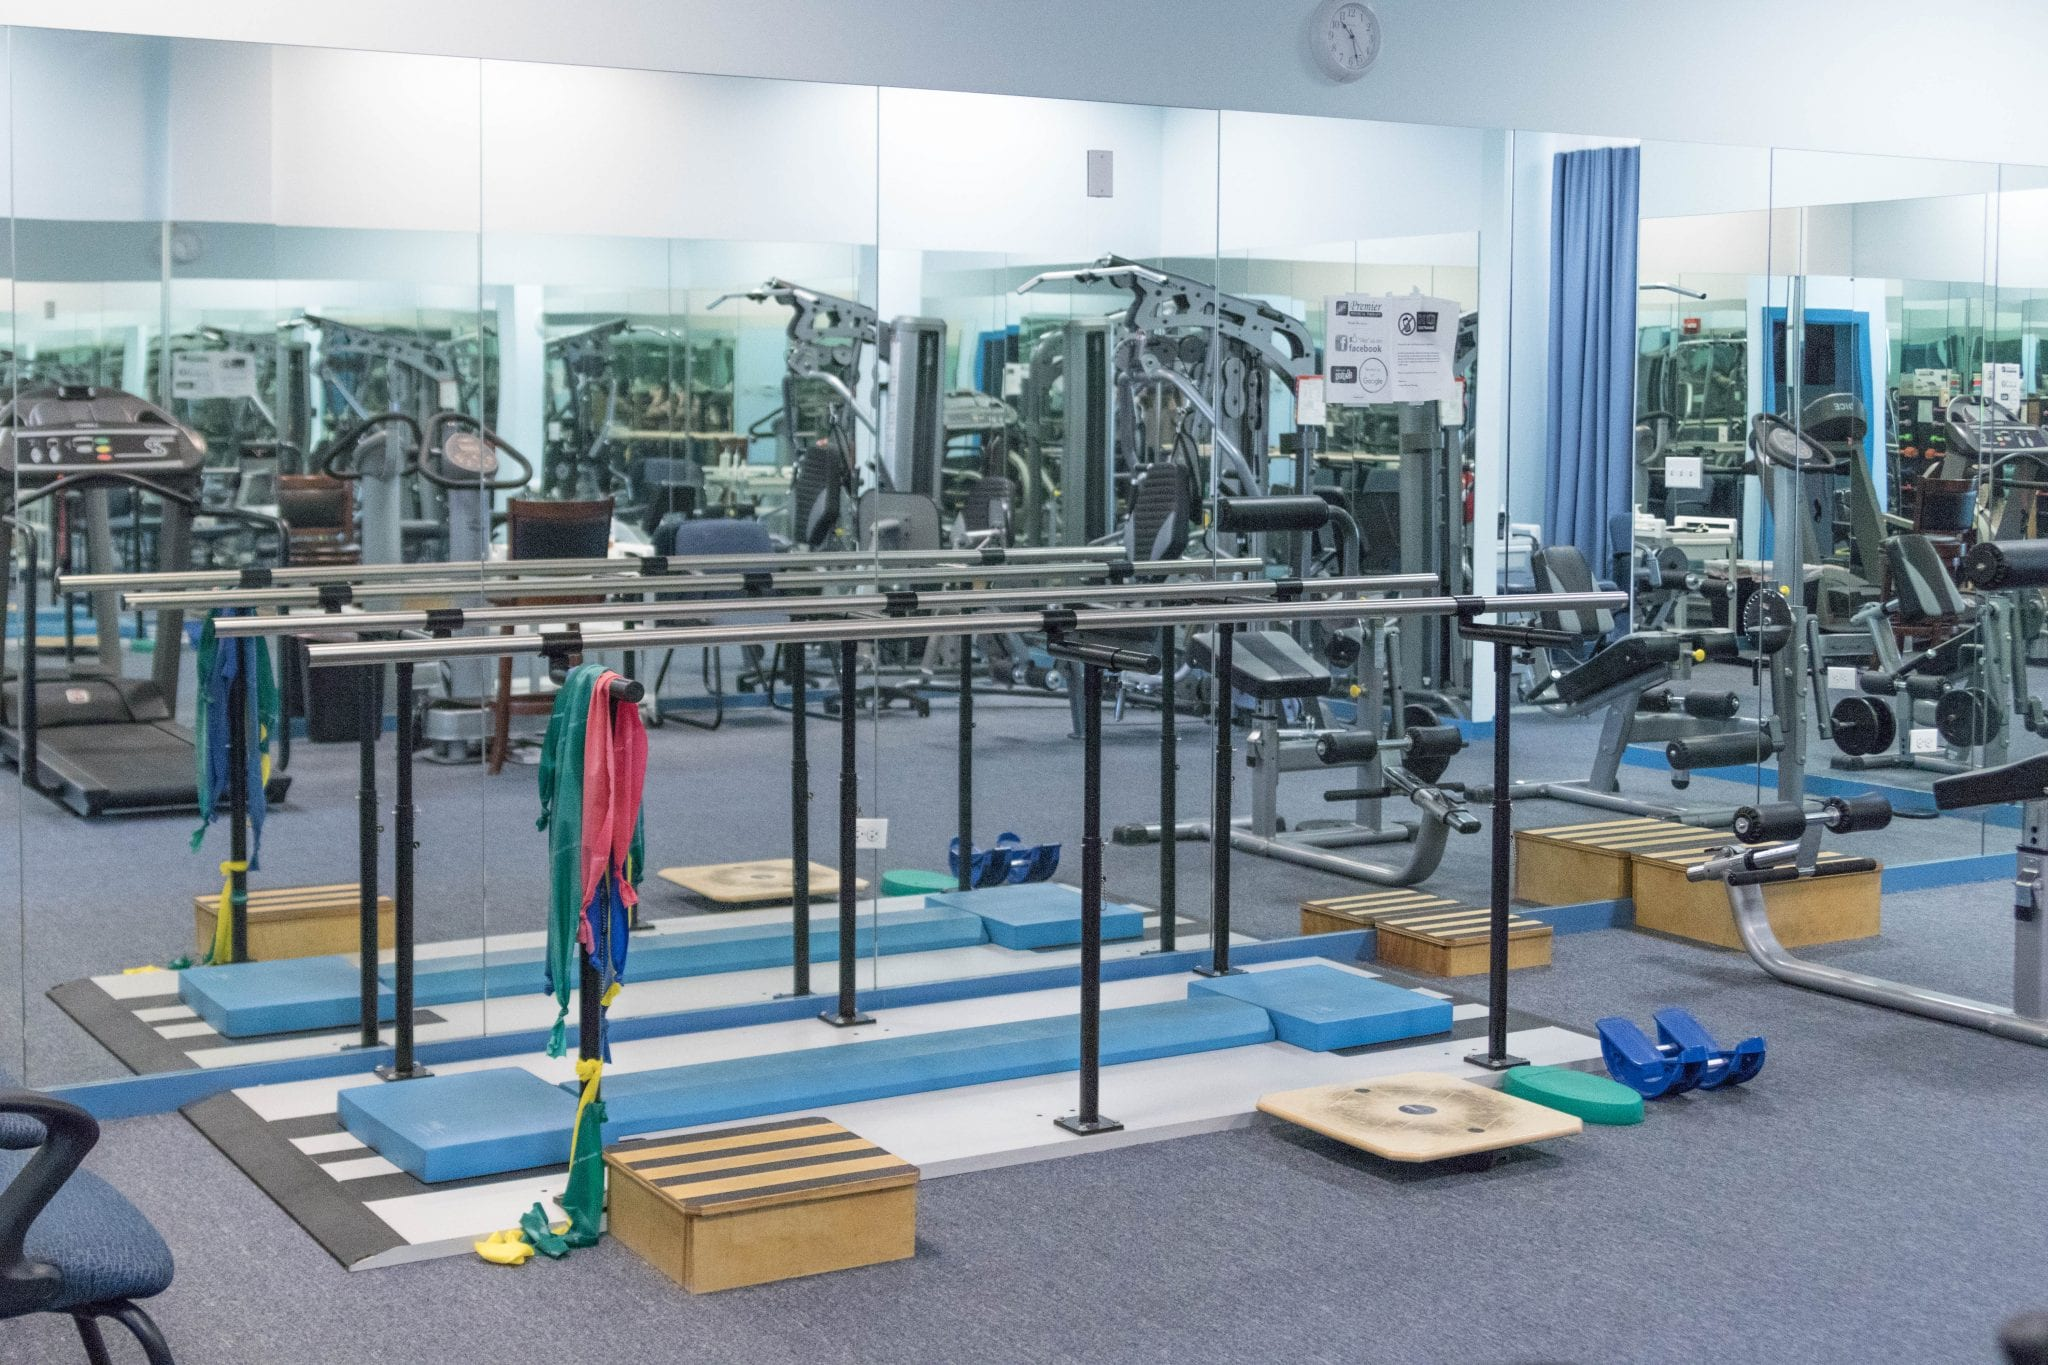 modern physical therapy equipment and technology for treatment